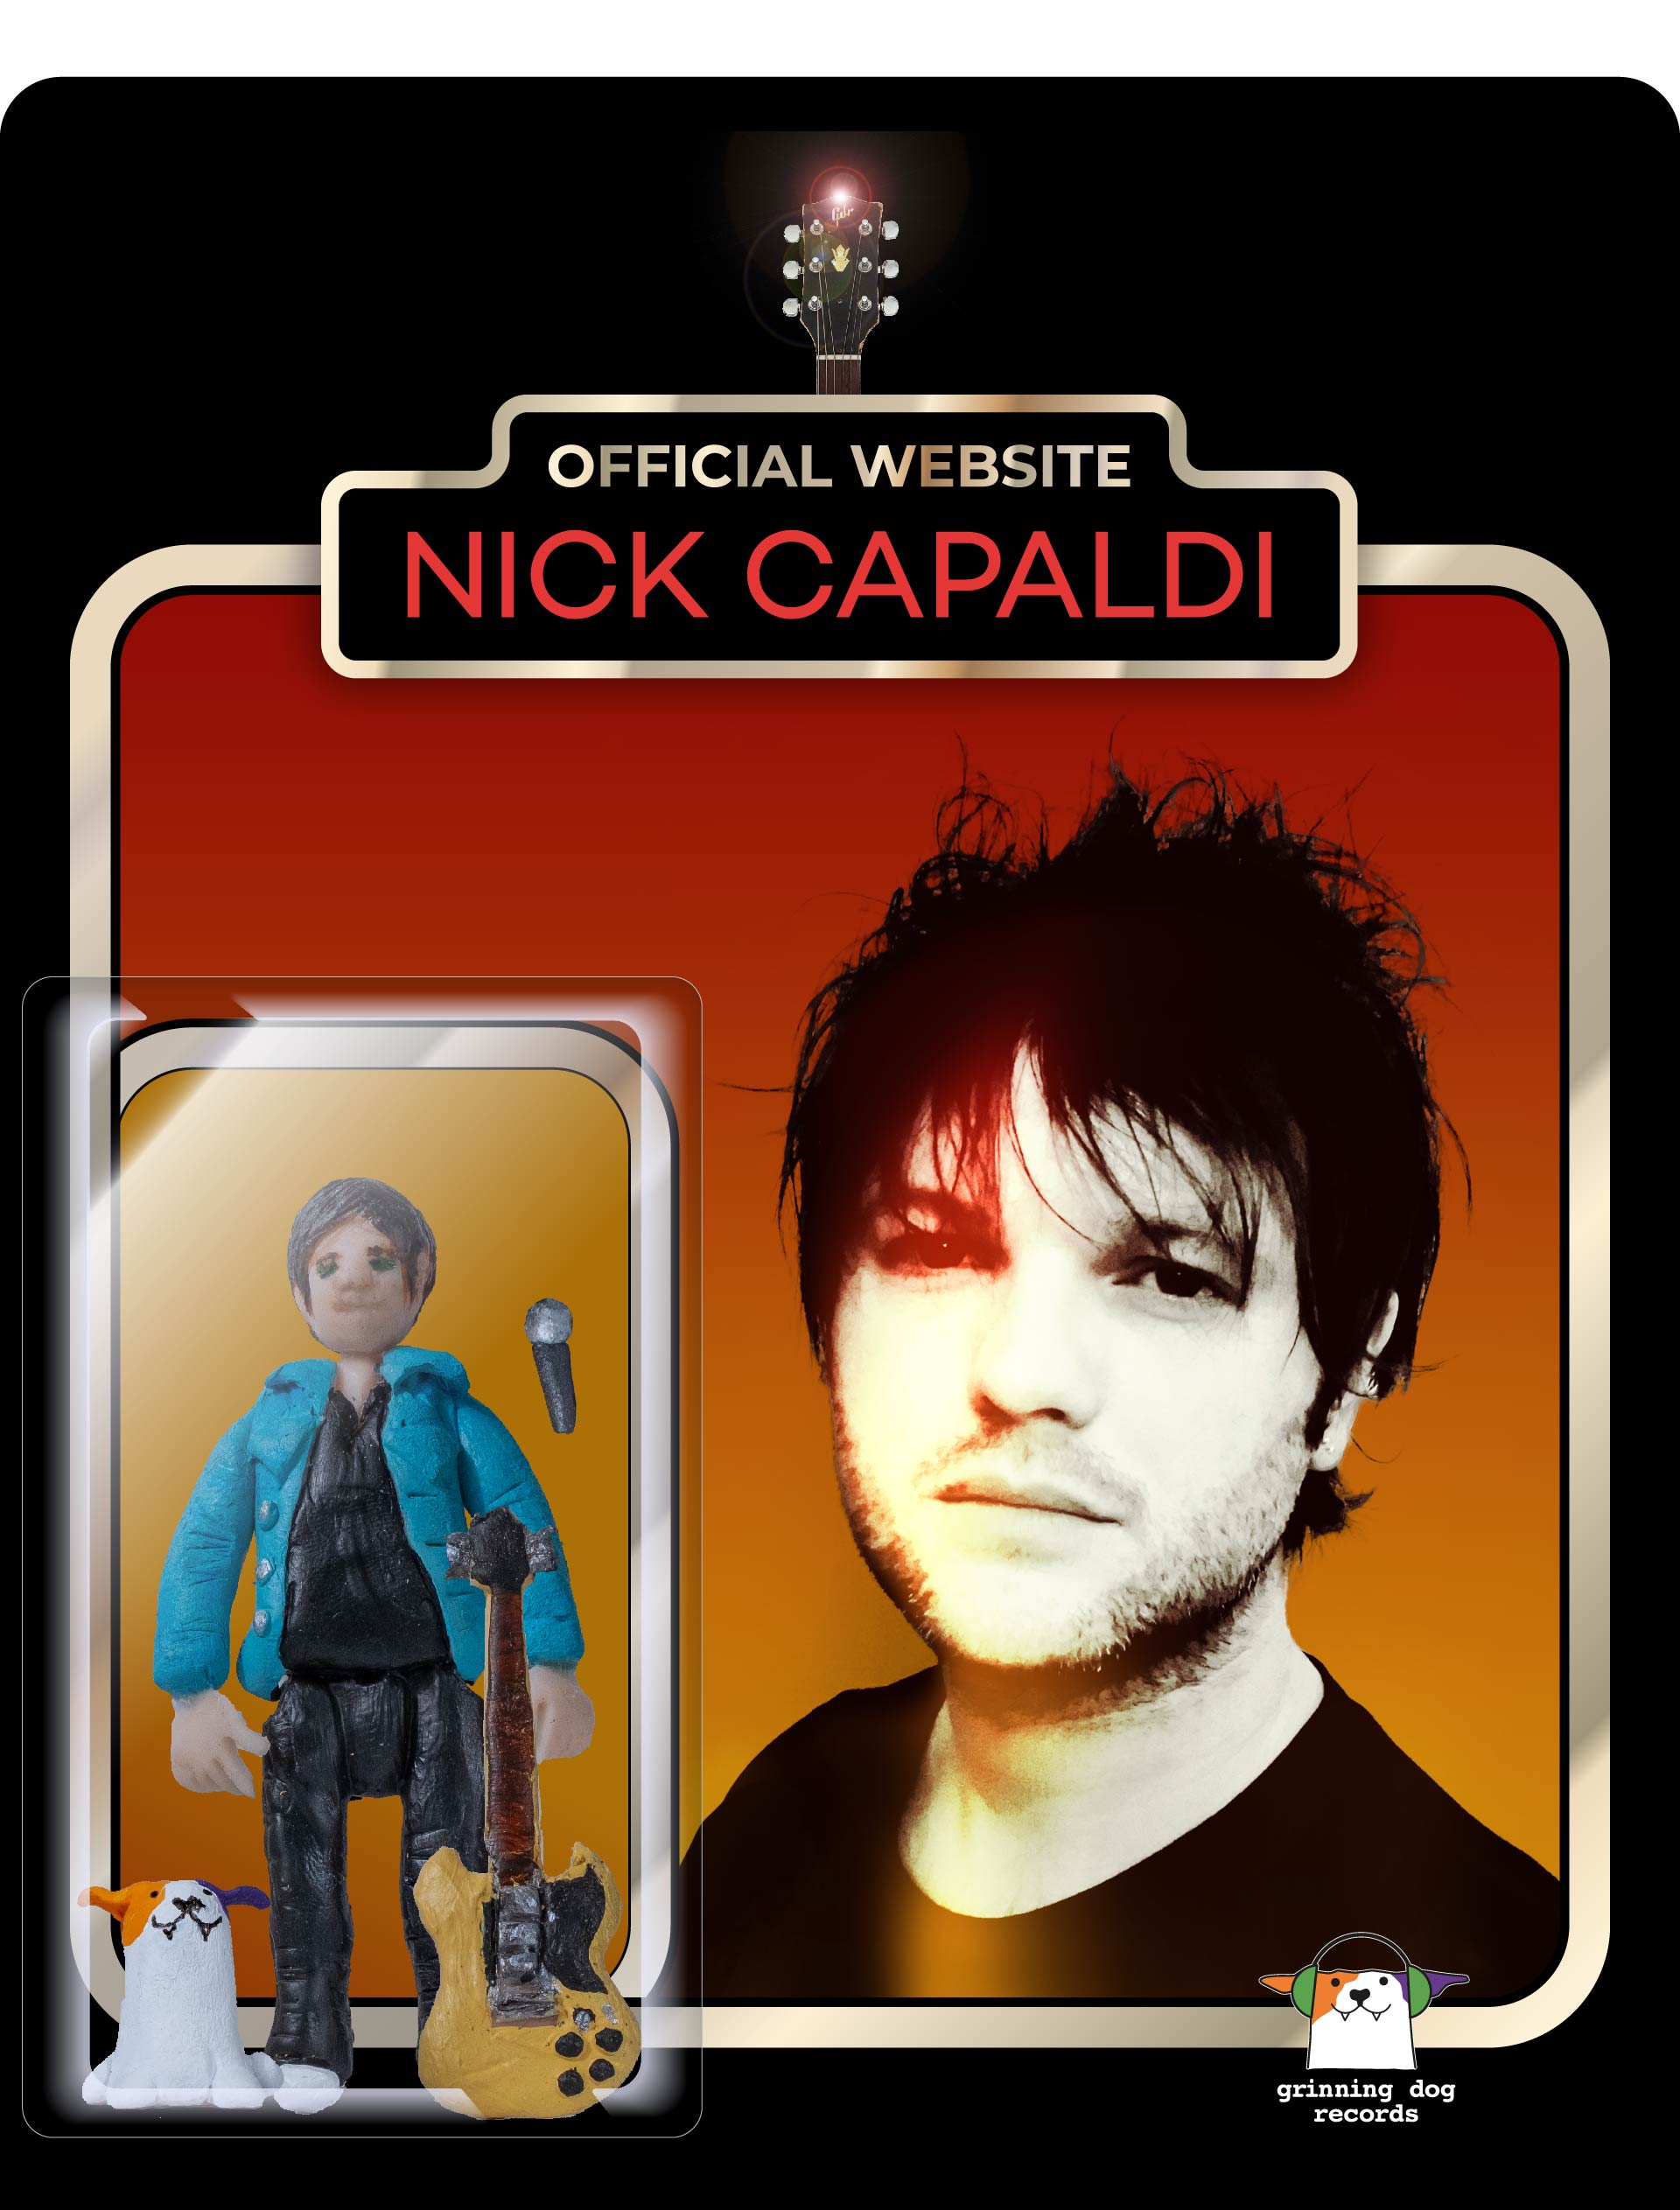 Nick Capaldi - Musician - official website